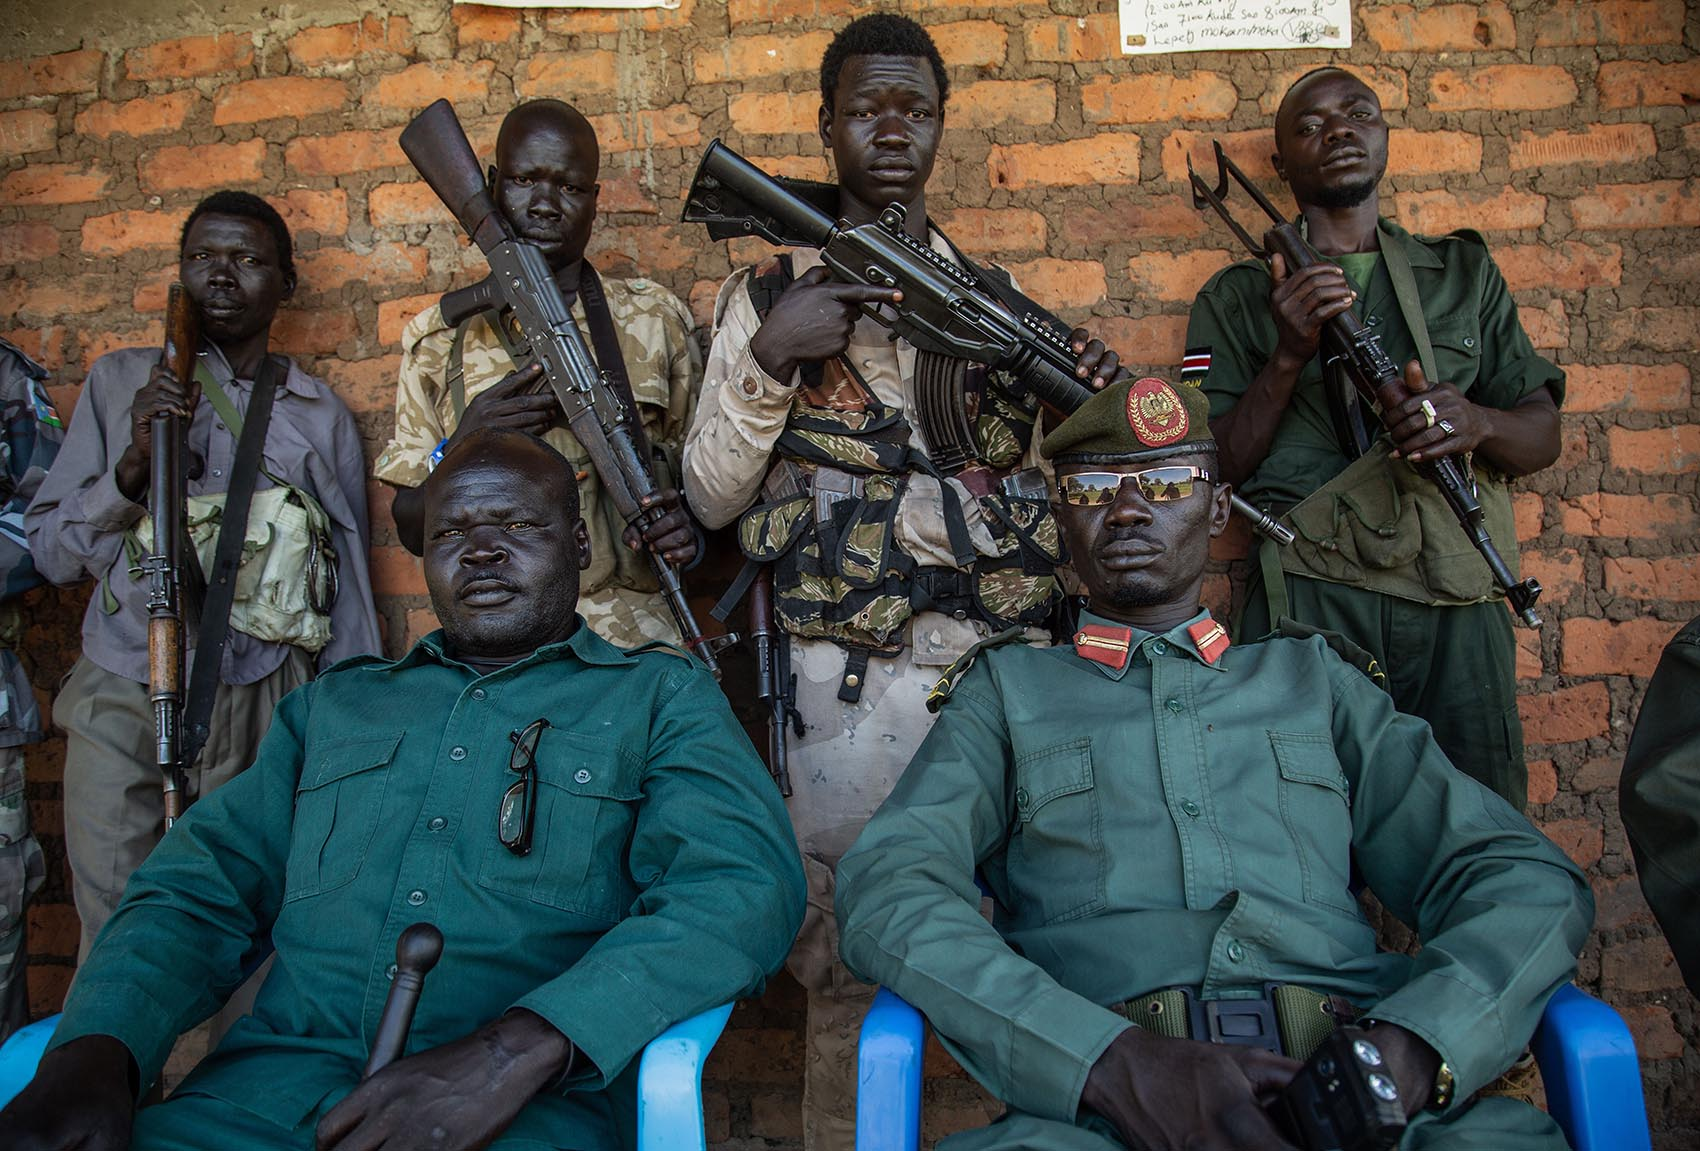 Civil War in South Sudan | Global Conflict Tracker